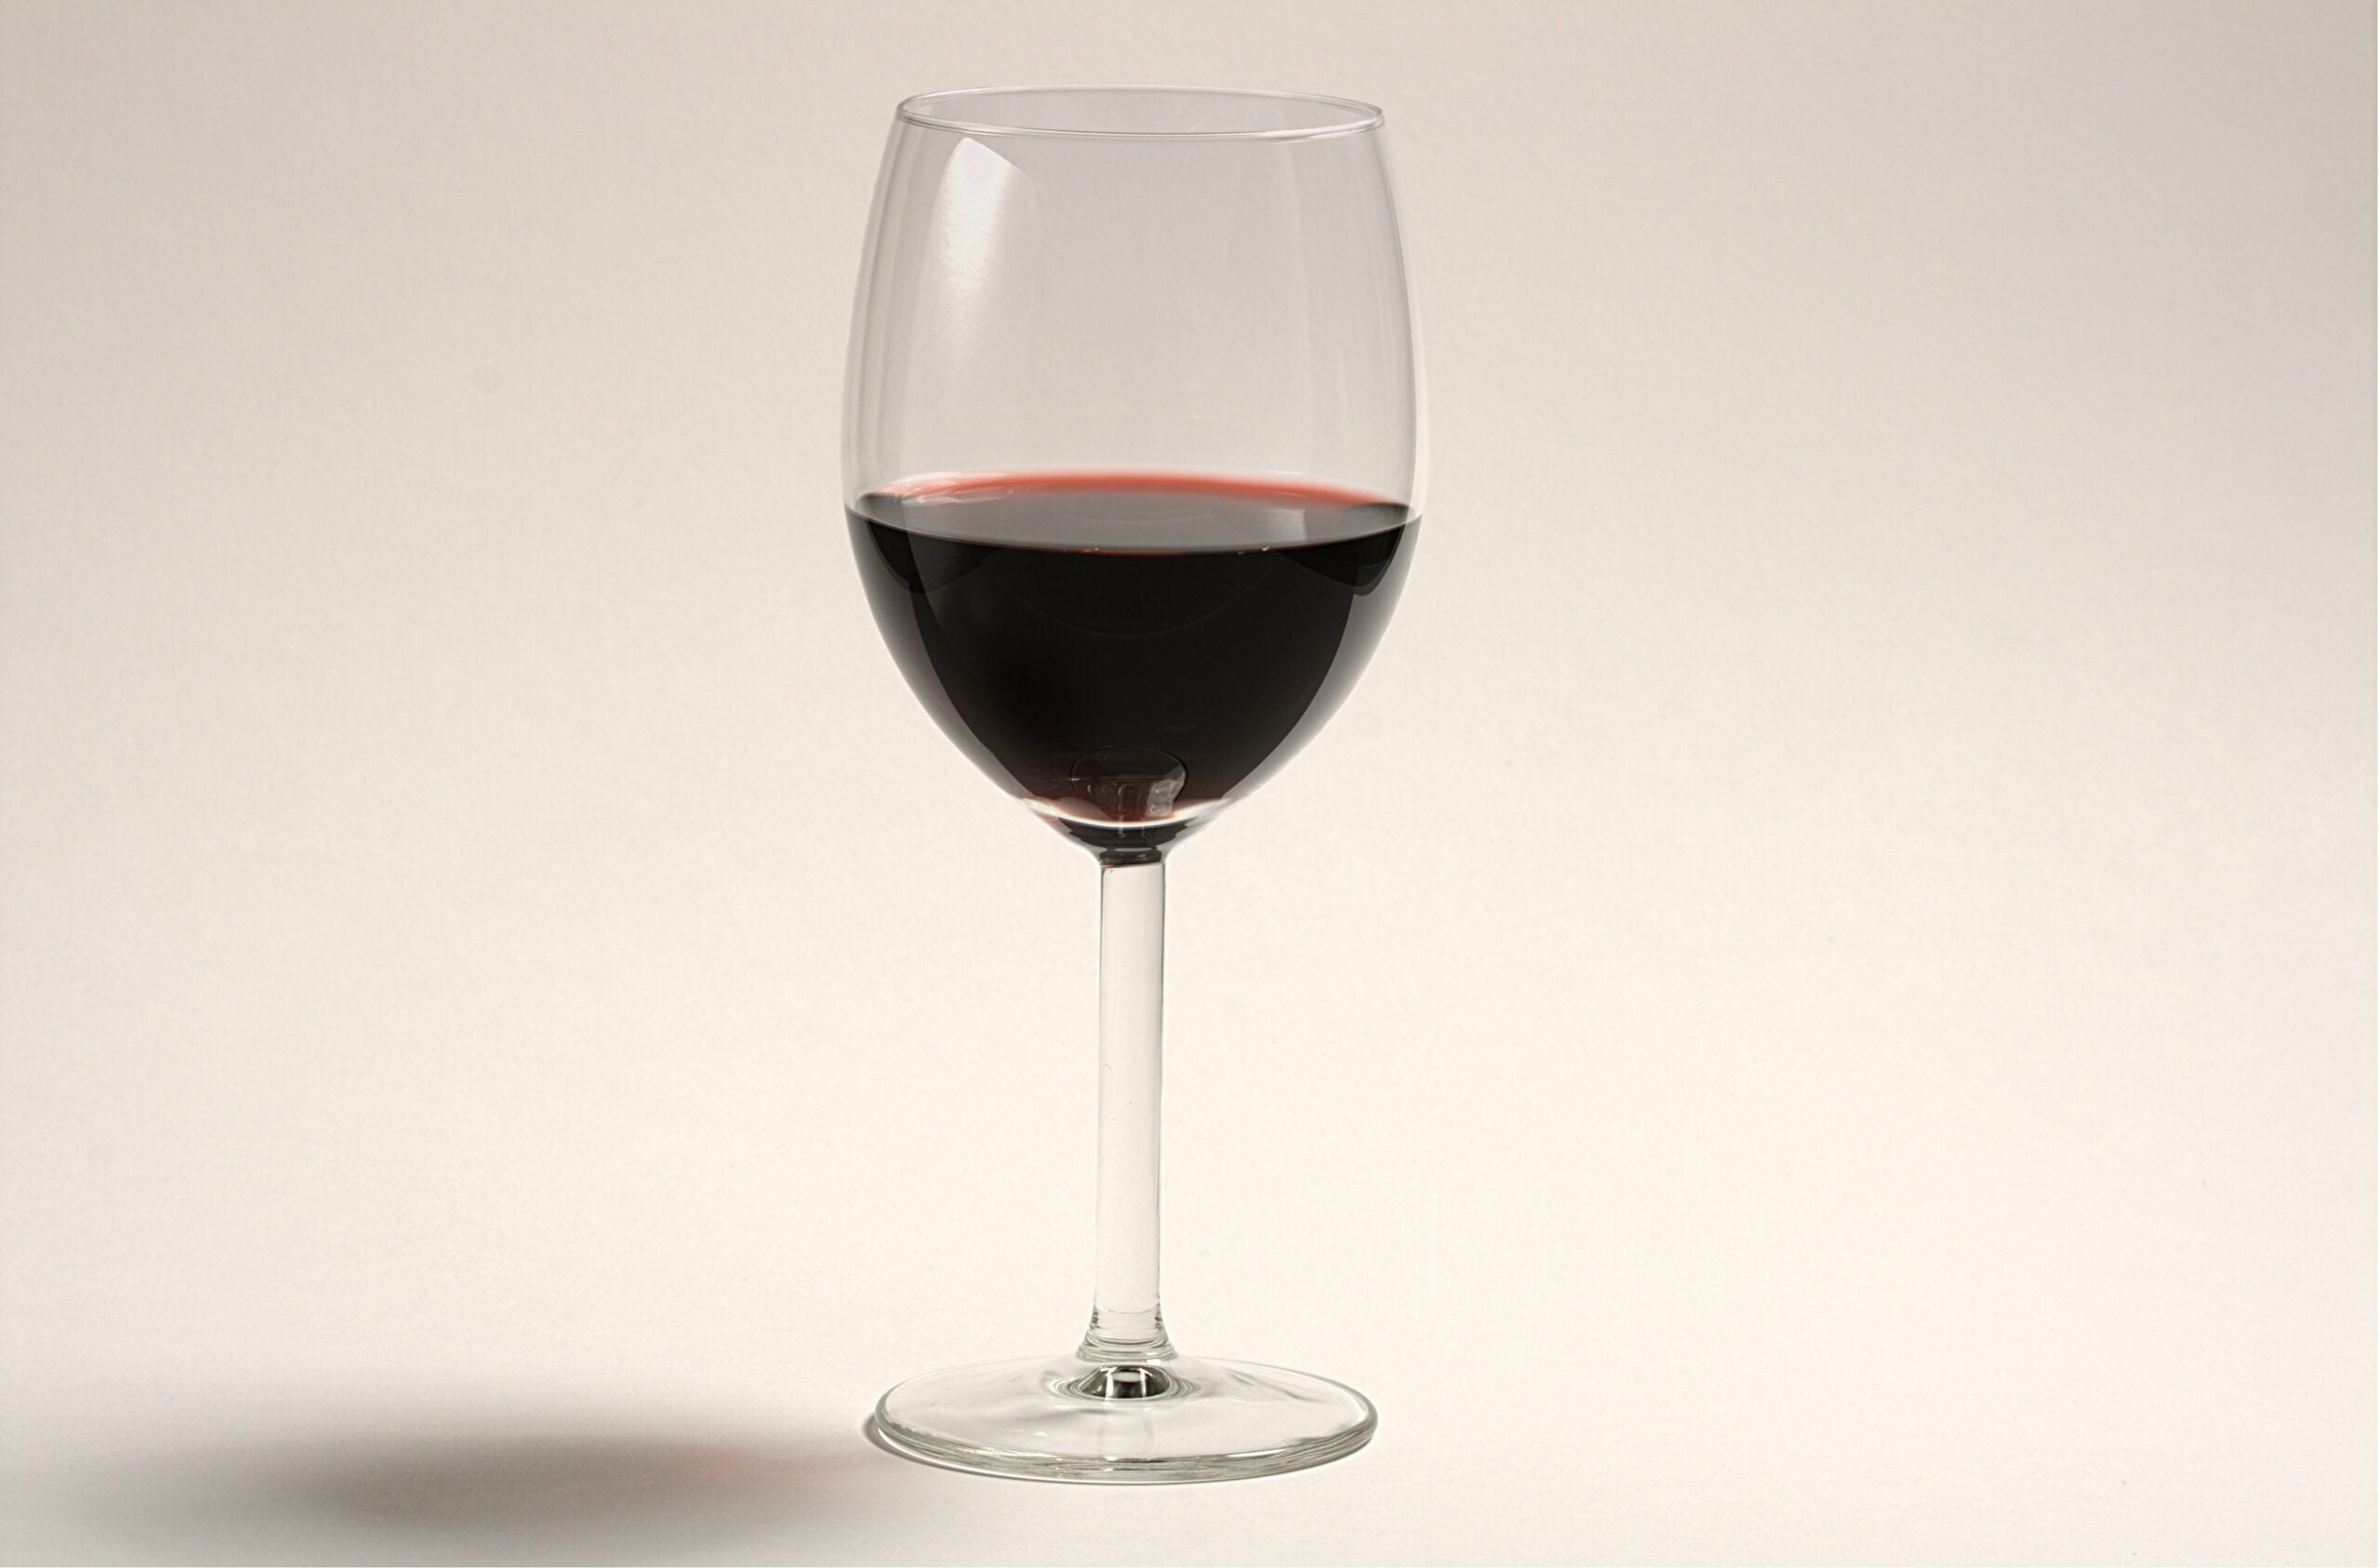 Cancer-Fighting Compound Found In Wine Is More Effective At Smaller Doses